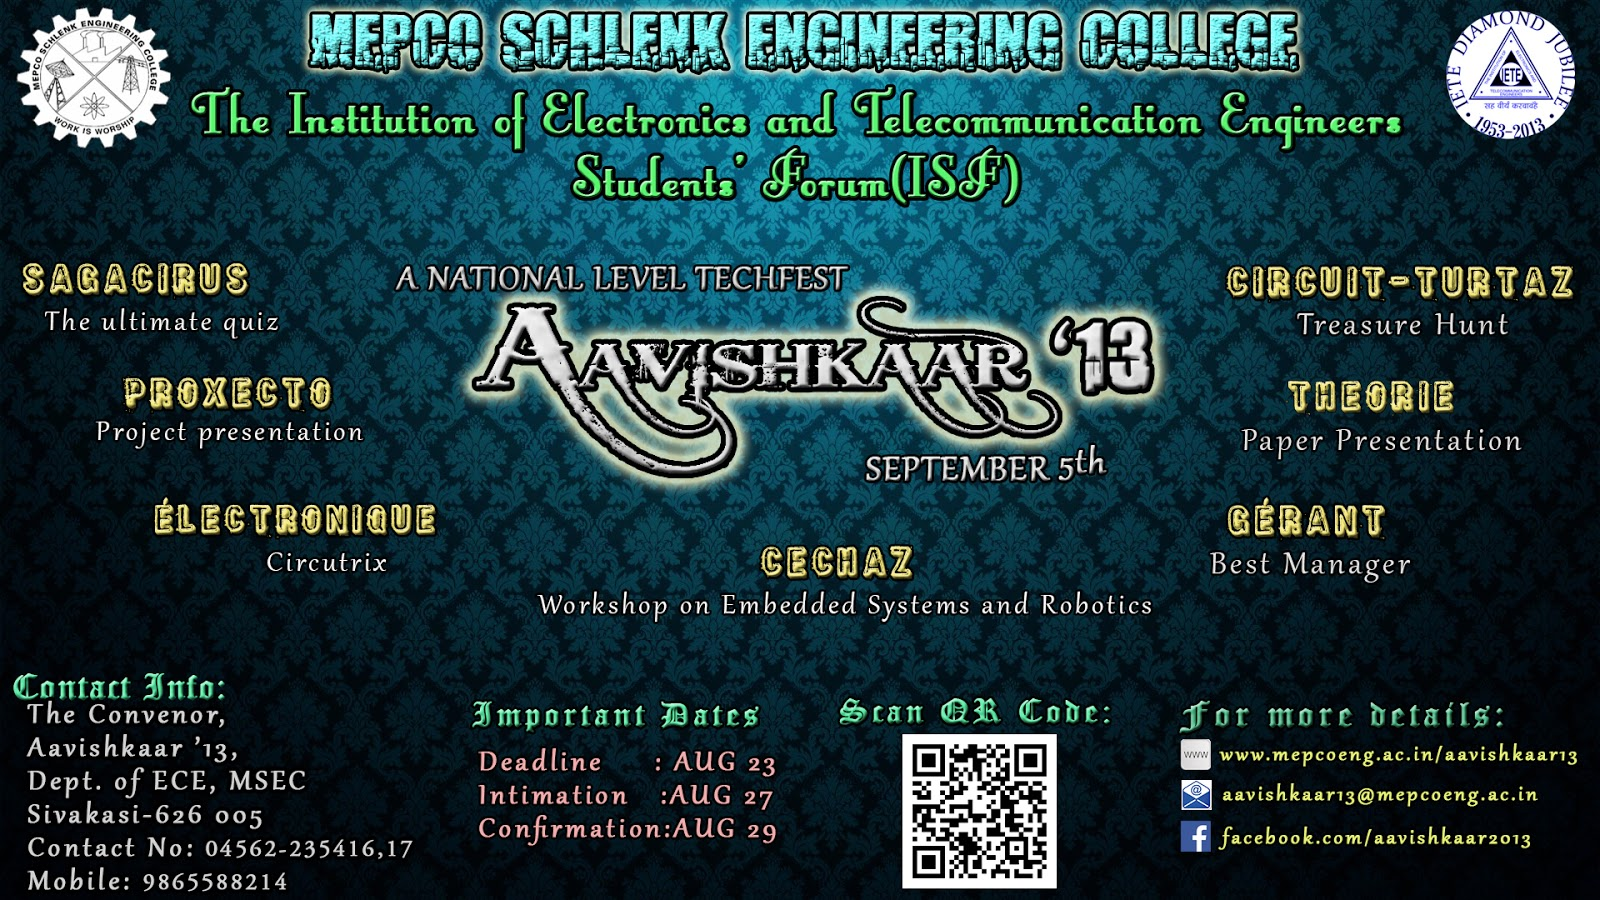 MEPCO ECE Here Comes Our Sympo AAVISHKAAR 13